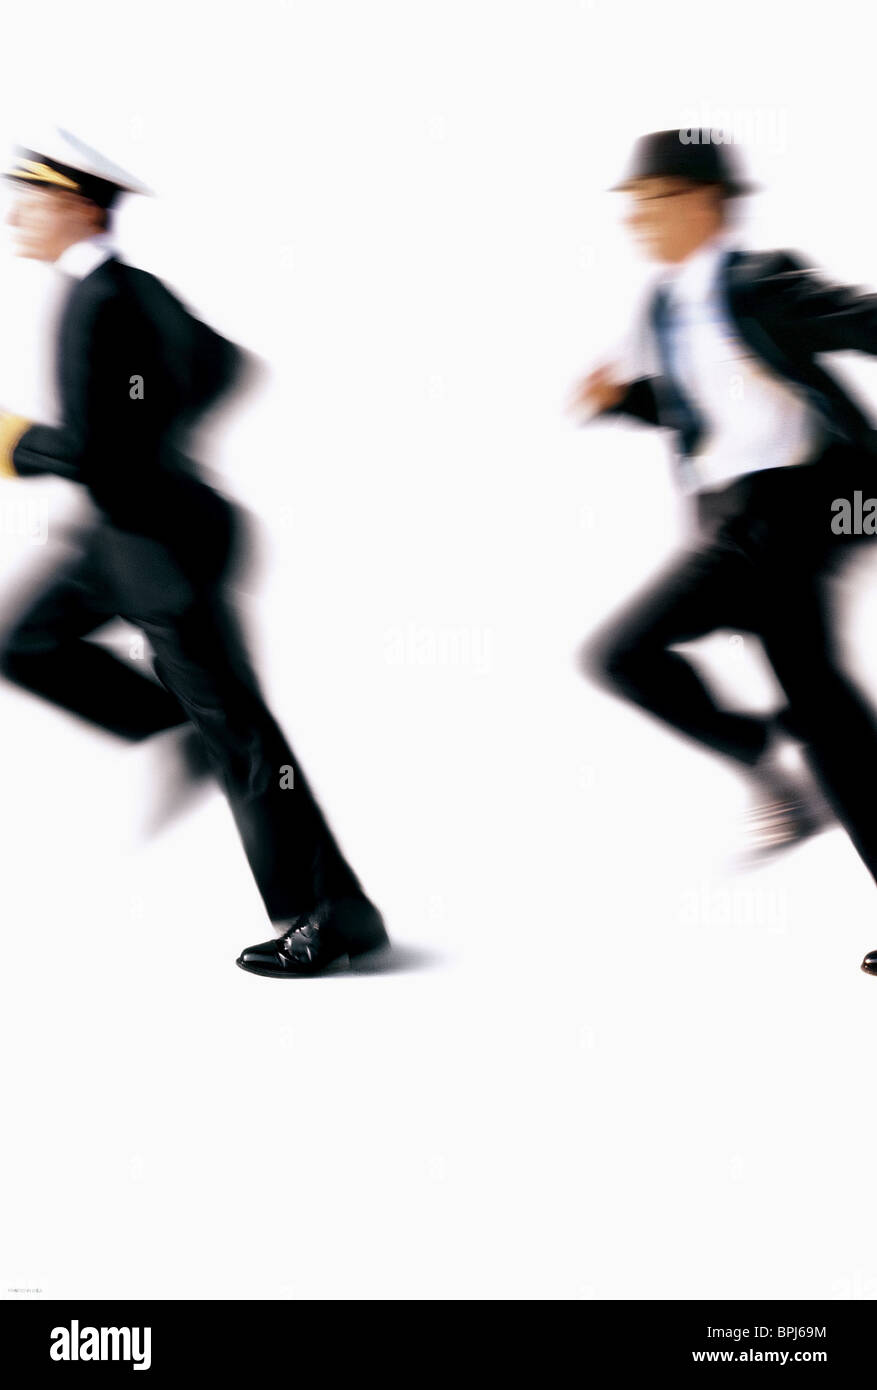 PROMOTIONAL ARTWORK CATCH ME IF YOU CAN (2002) - Stock Image